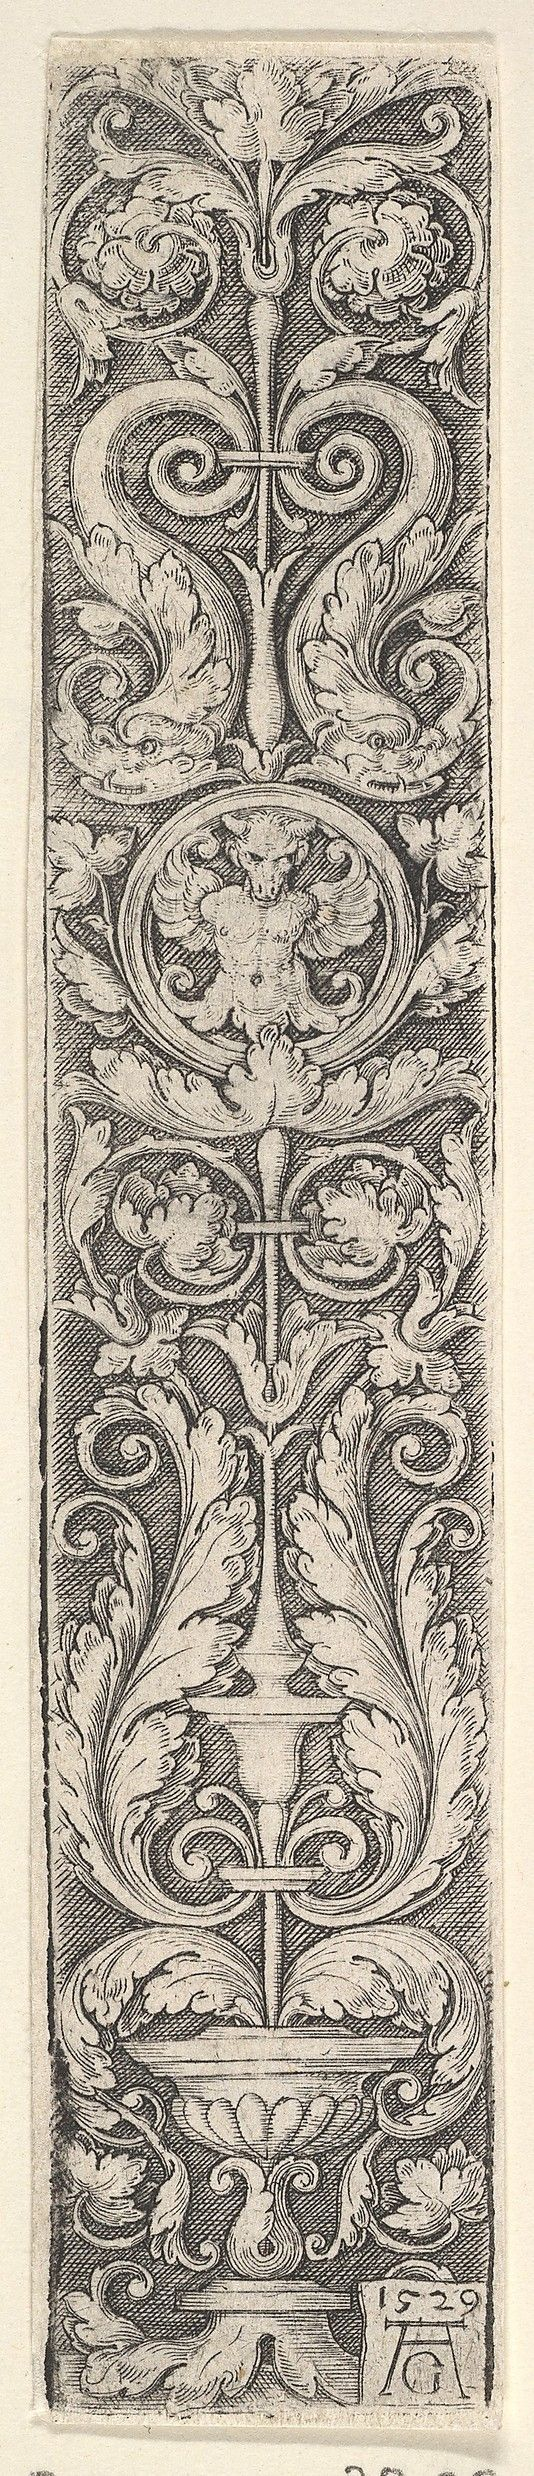 Vertical Panel with a Candelabrum Containing a Medallion with a Centaur and a Pair of Dolphins (1529)